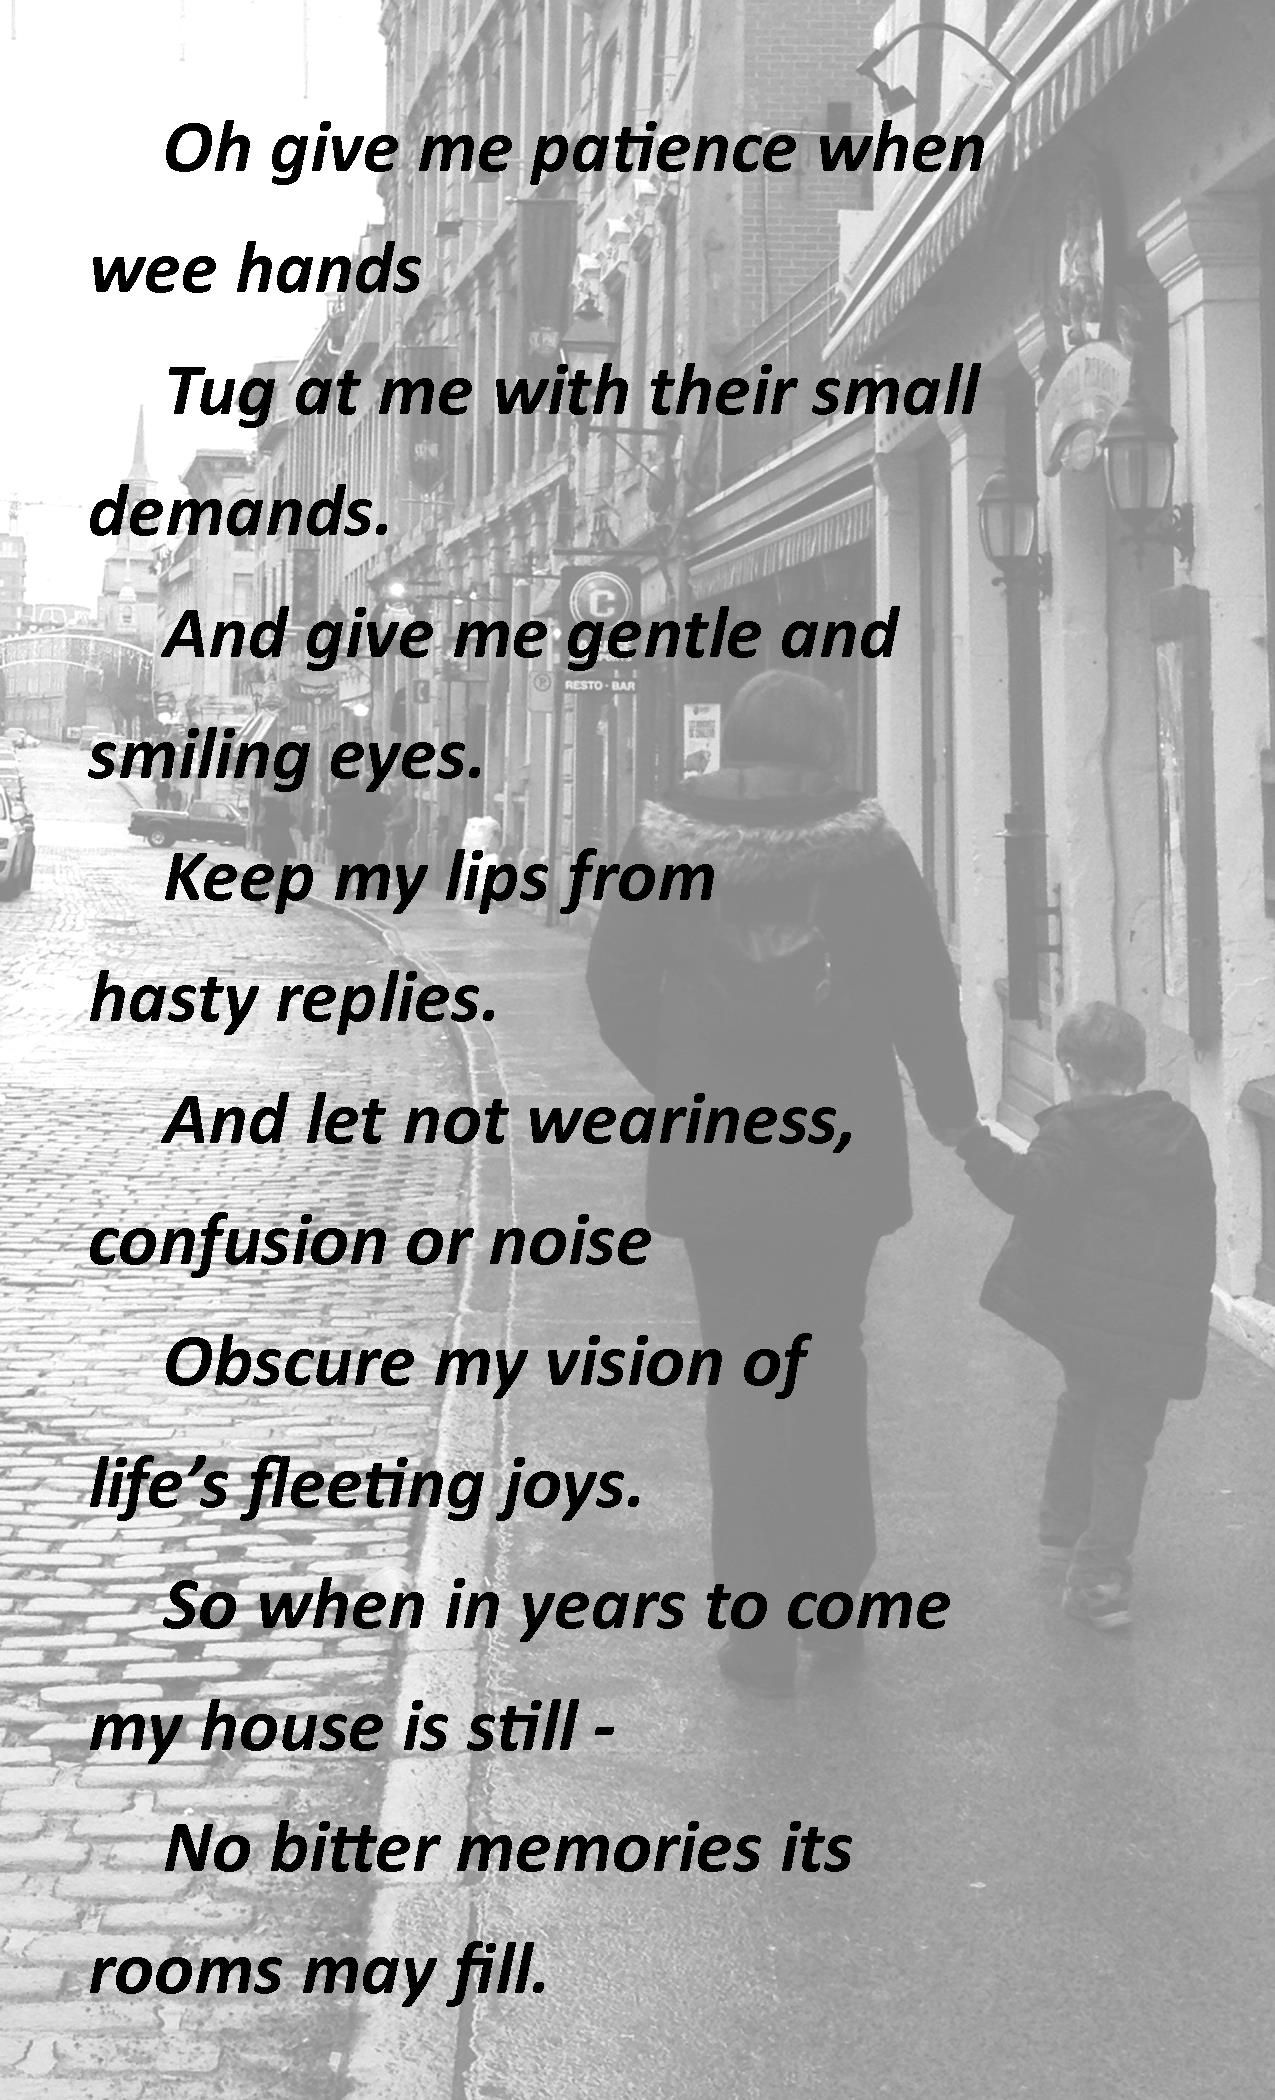 Oh give me patience when wee hands  Tug at me with their small demands.  And give me gentle and smiling eyes,  Keep my lips from hasty replies.  And let not weariness confusion or noise  Obscure my vision of life's fleeting joys.  So when in years to come my house is still -  No bitter memories its rooms may fill.